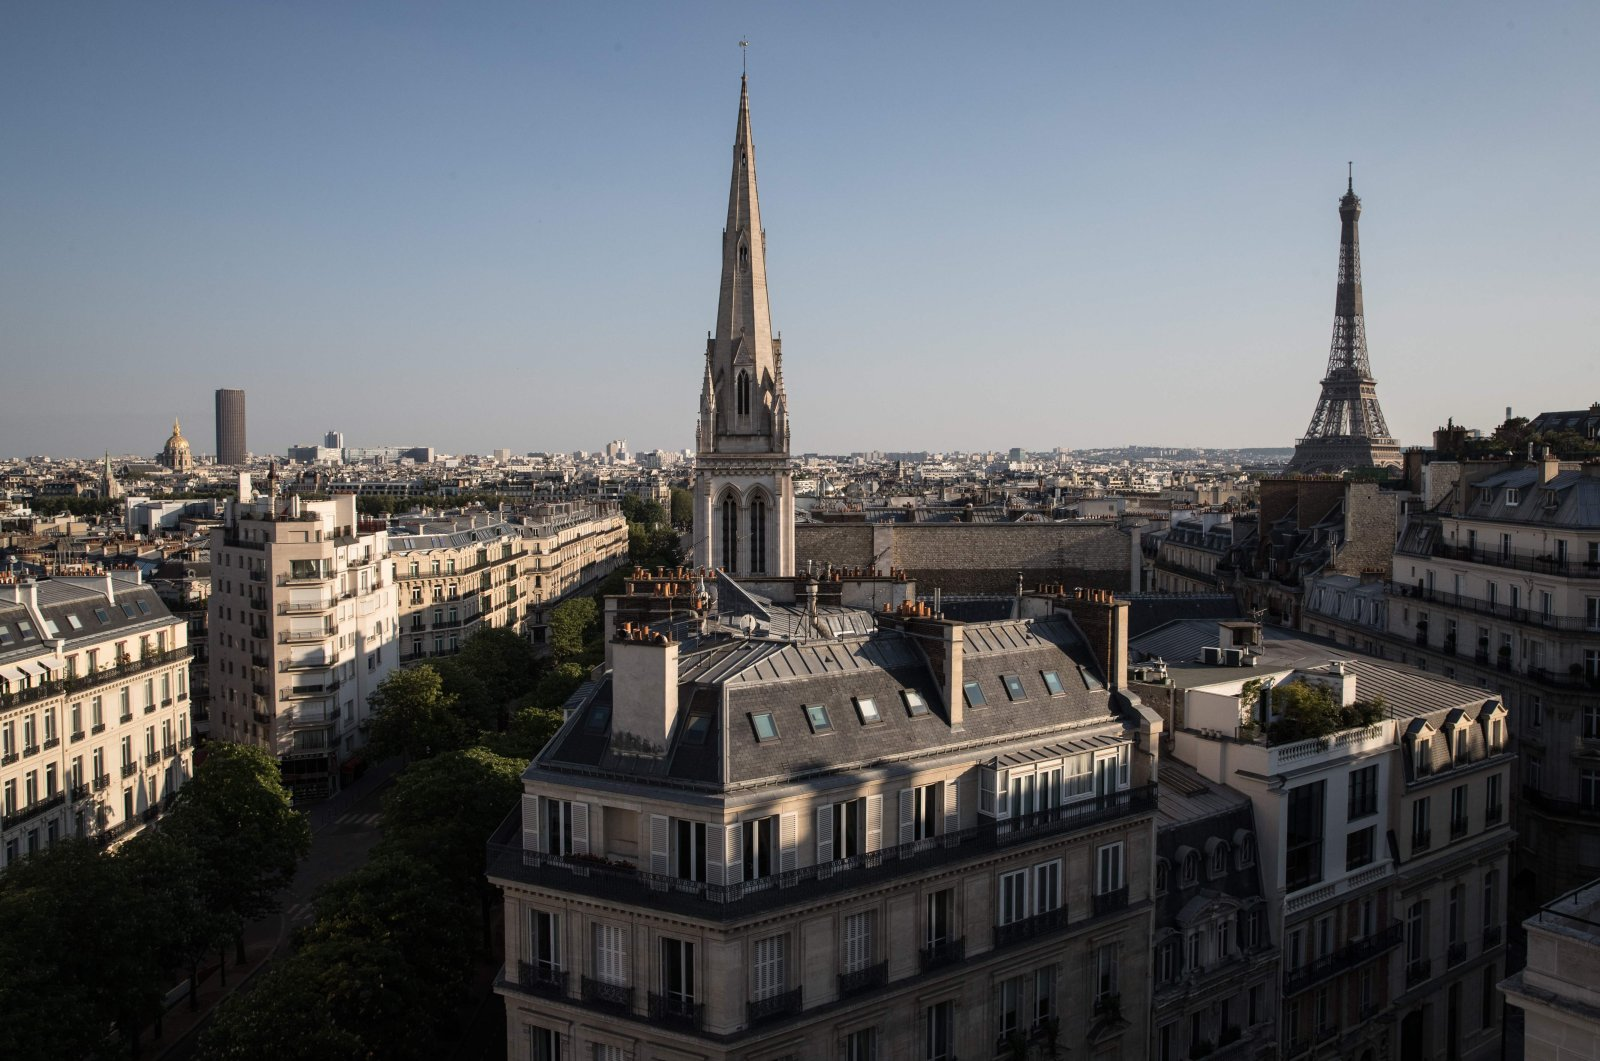 This picture, taken on April 23, 2020, shows (From L) The Invalides, the Montparnasse tower, the American Cathedral and the Eiffel Tower, in Paris, on the 38th day of a lockdown in France aimed at curbing the spread of the COVID-19 disease, caused by the novel coronavirus. (AFP Photo)